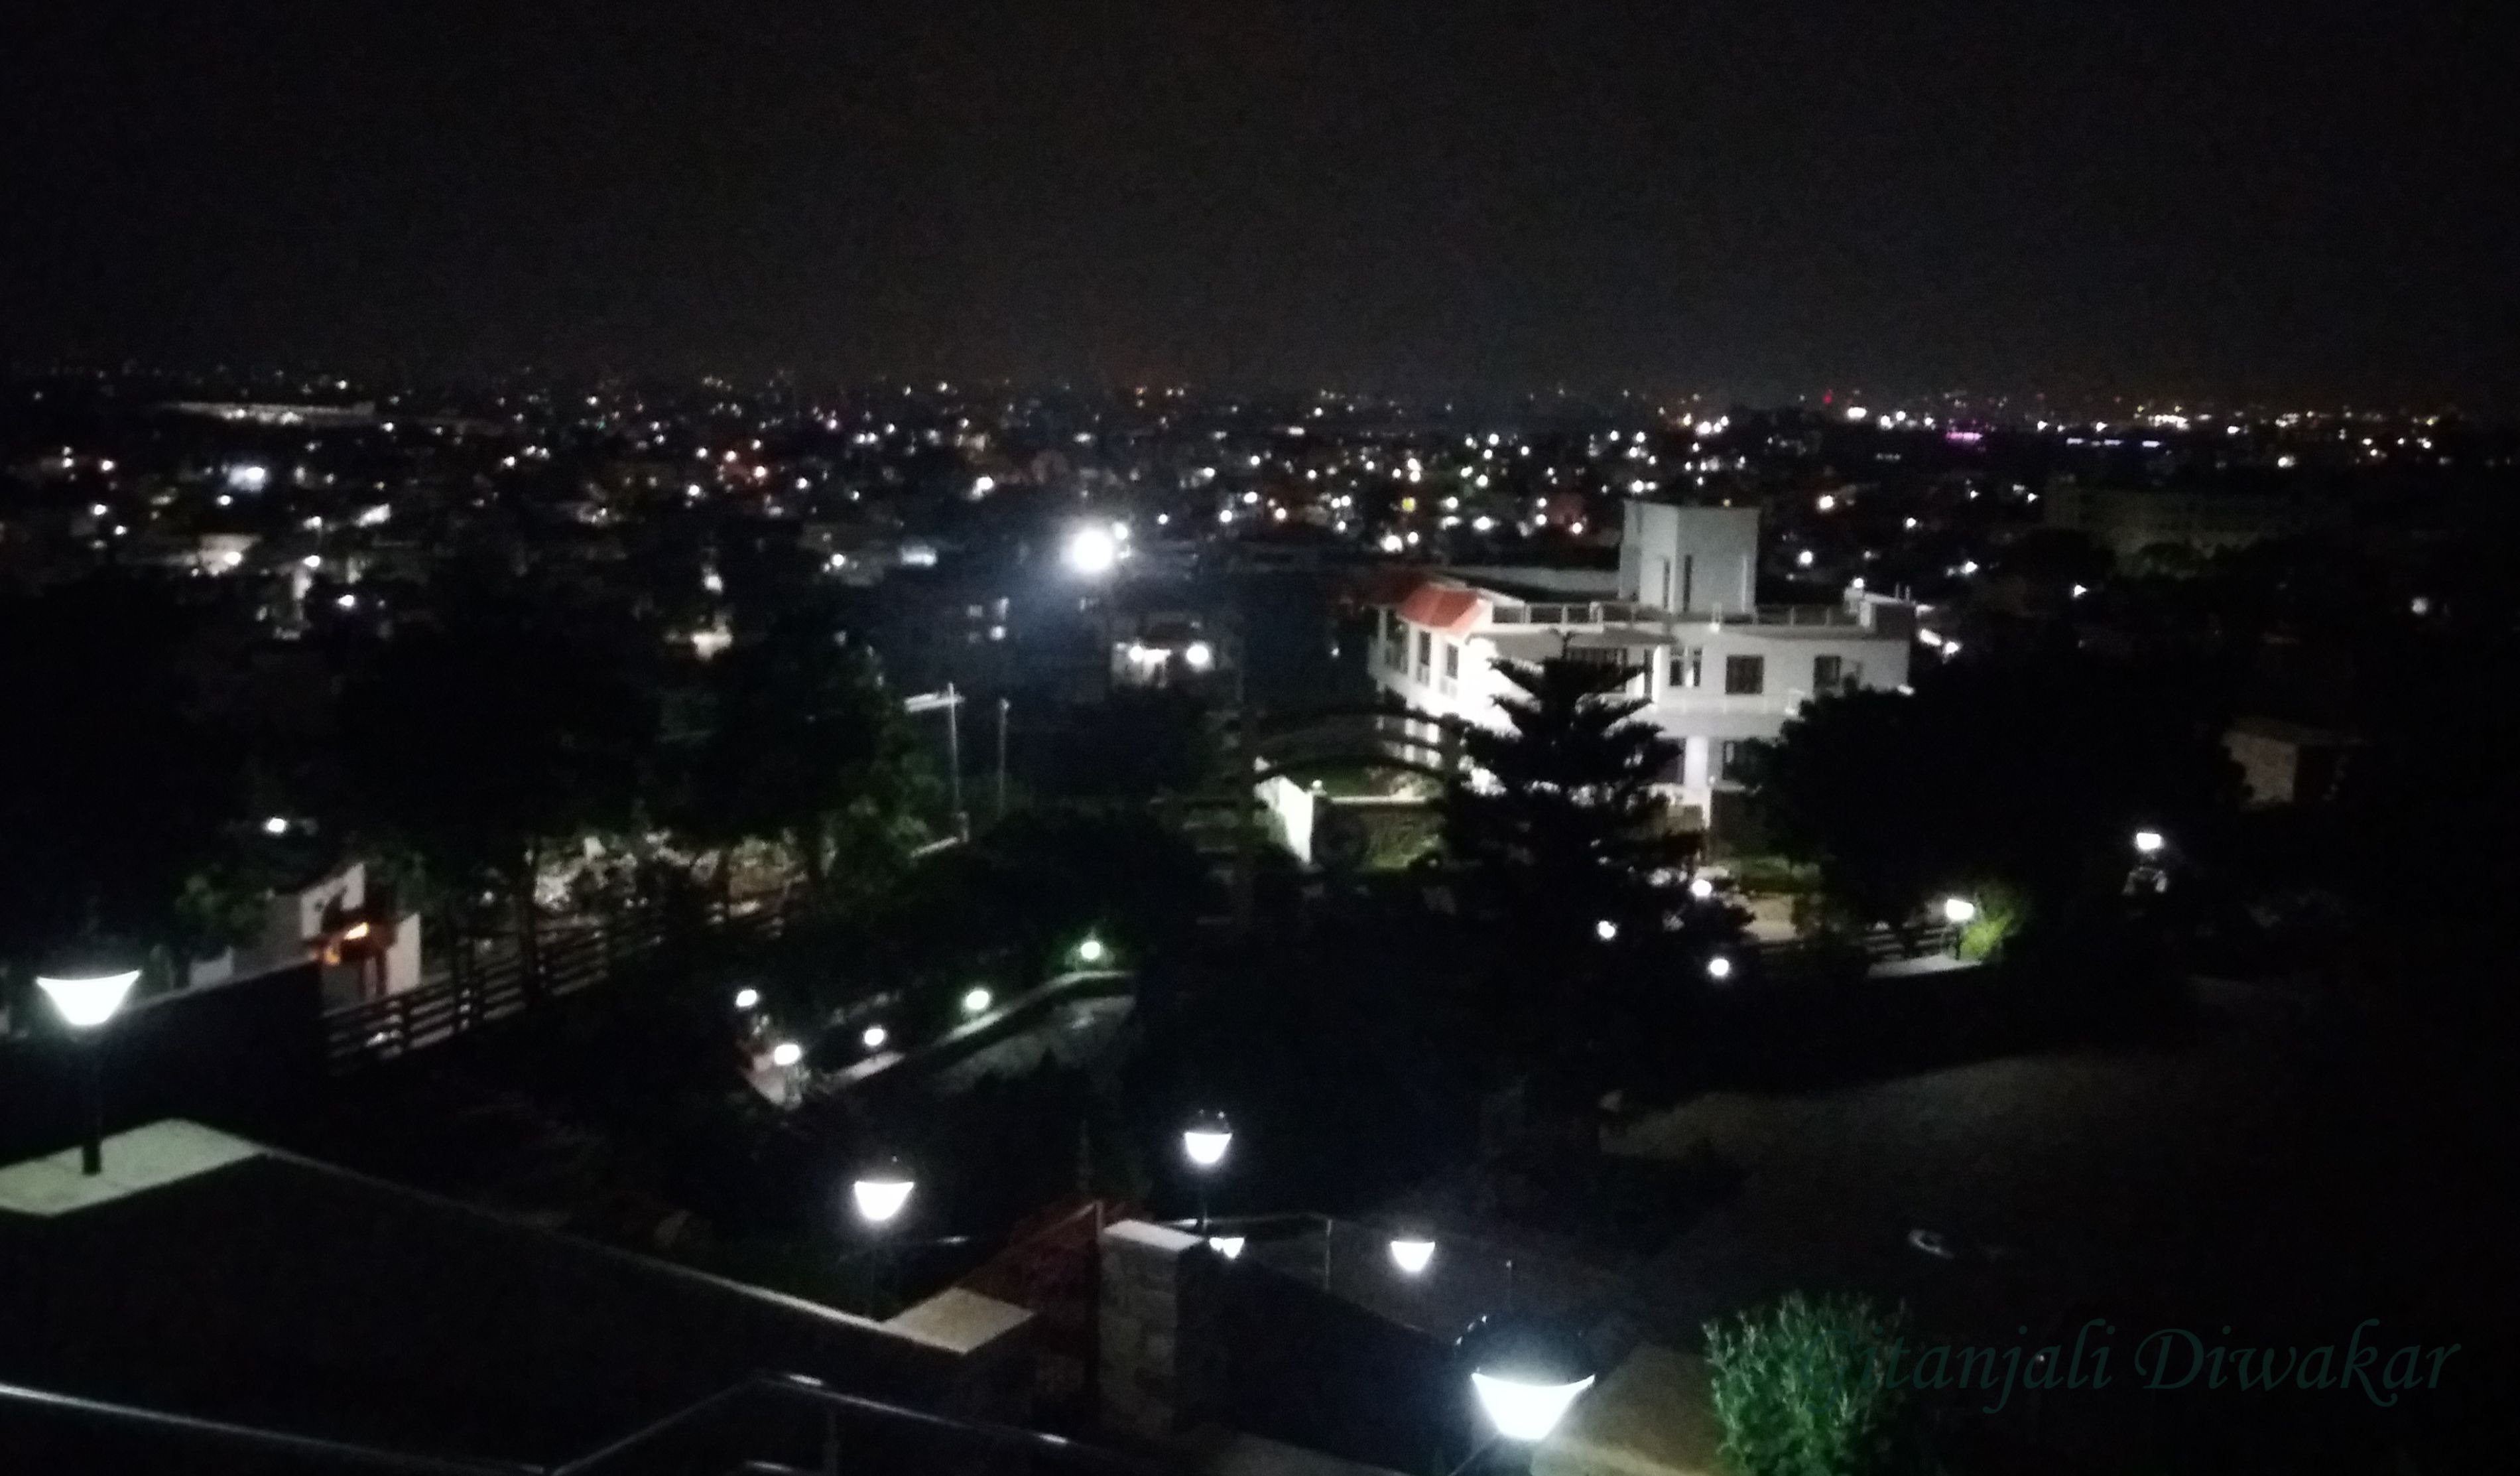 A view of Secunderabad at night